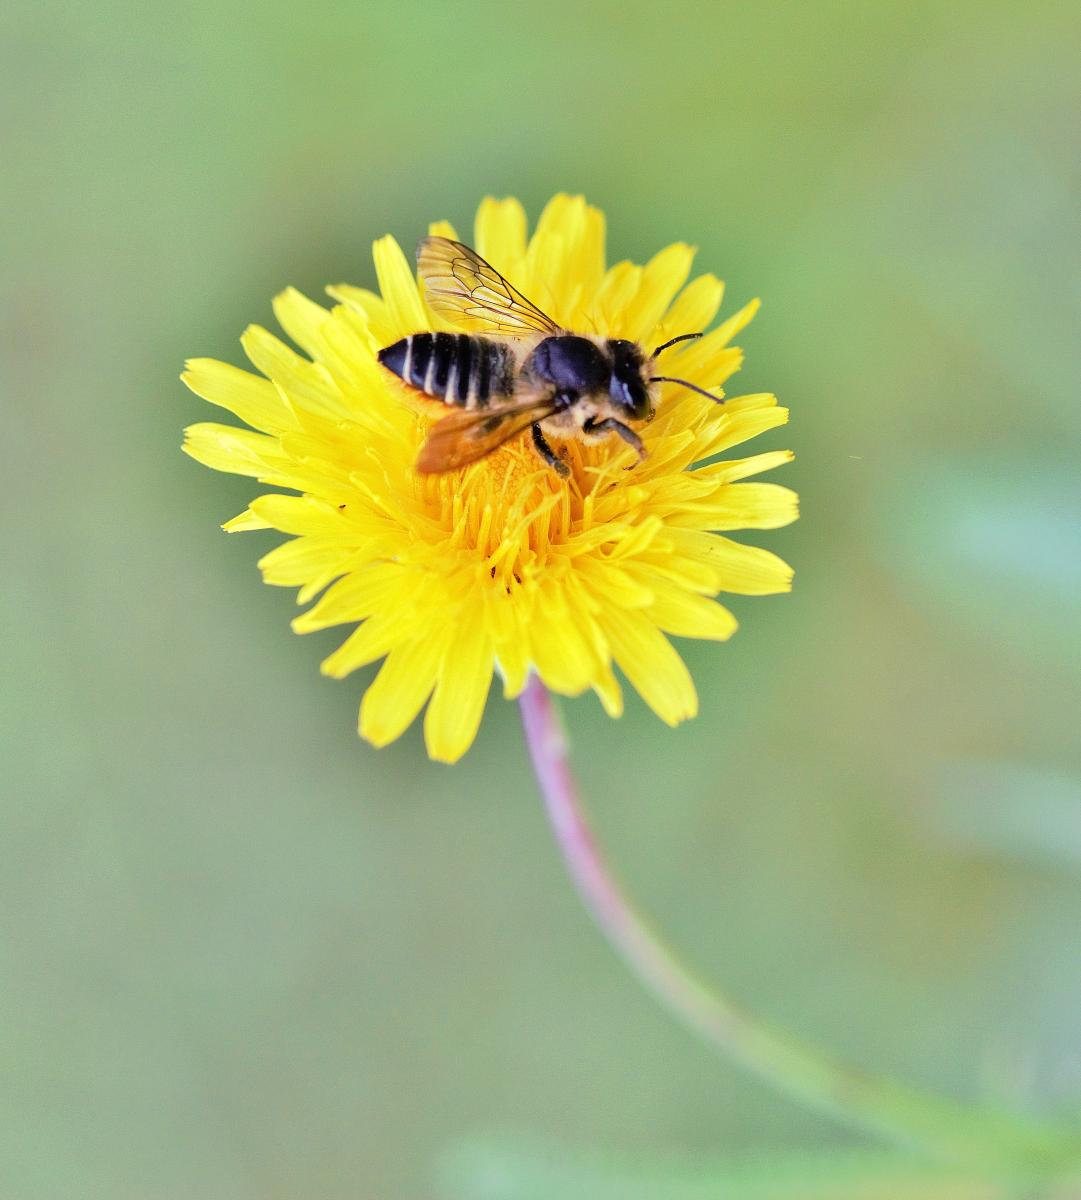 Female leafcutting bee on a yellow dandelion flower